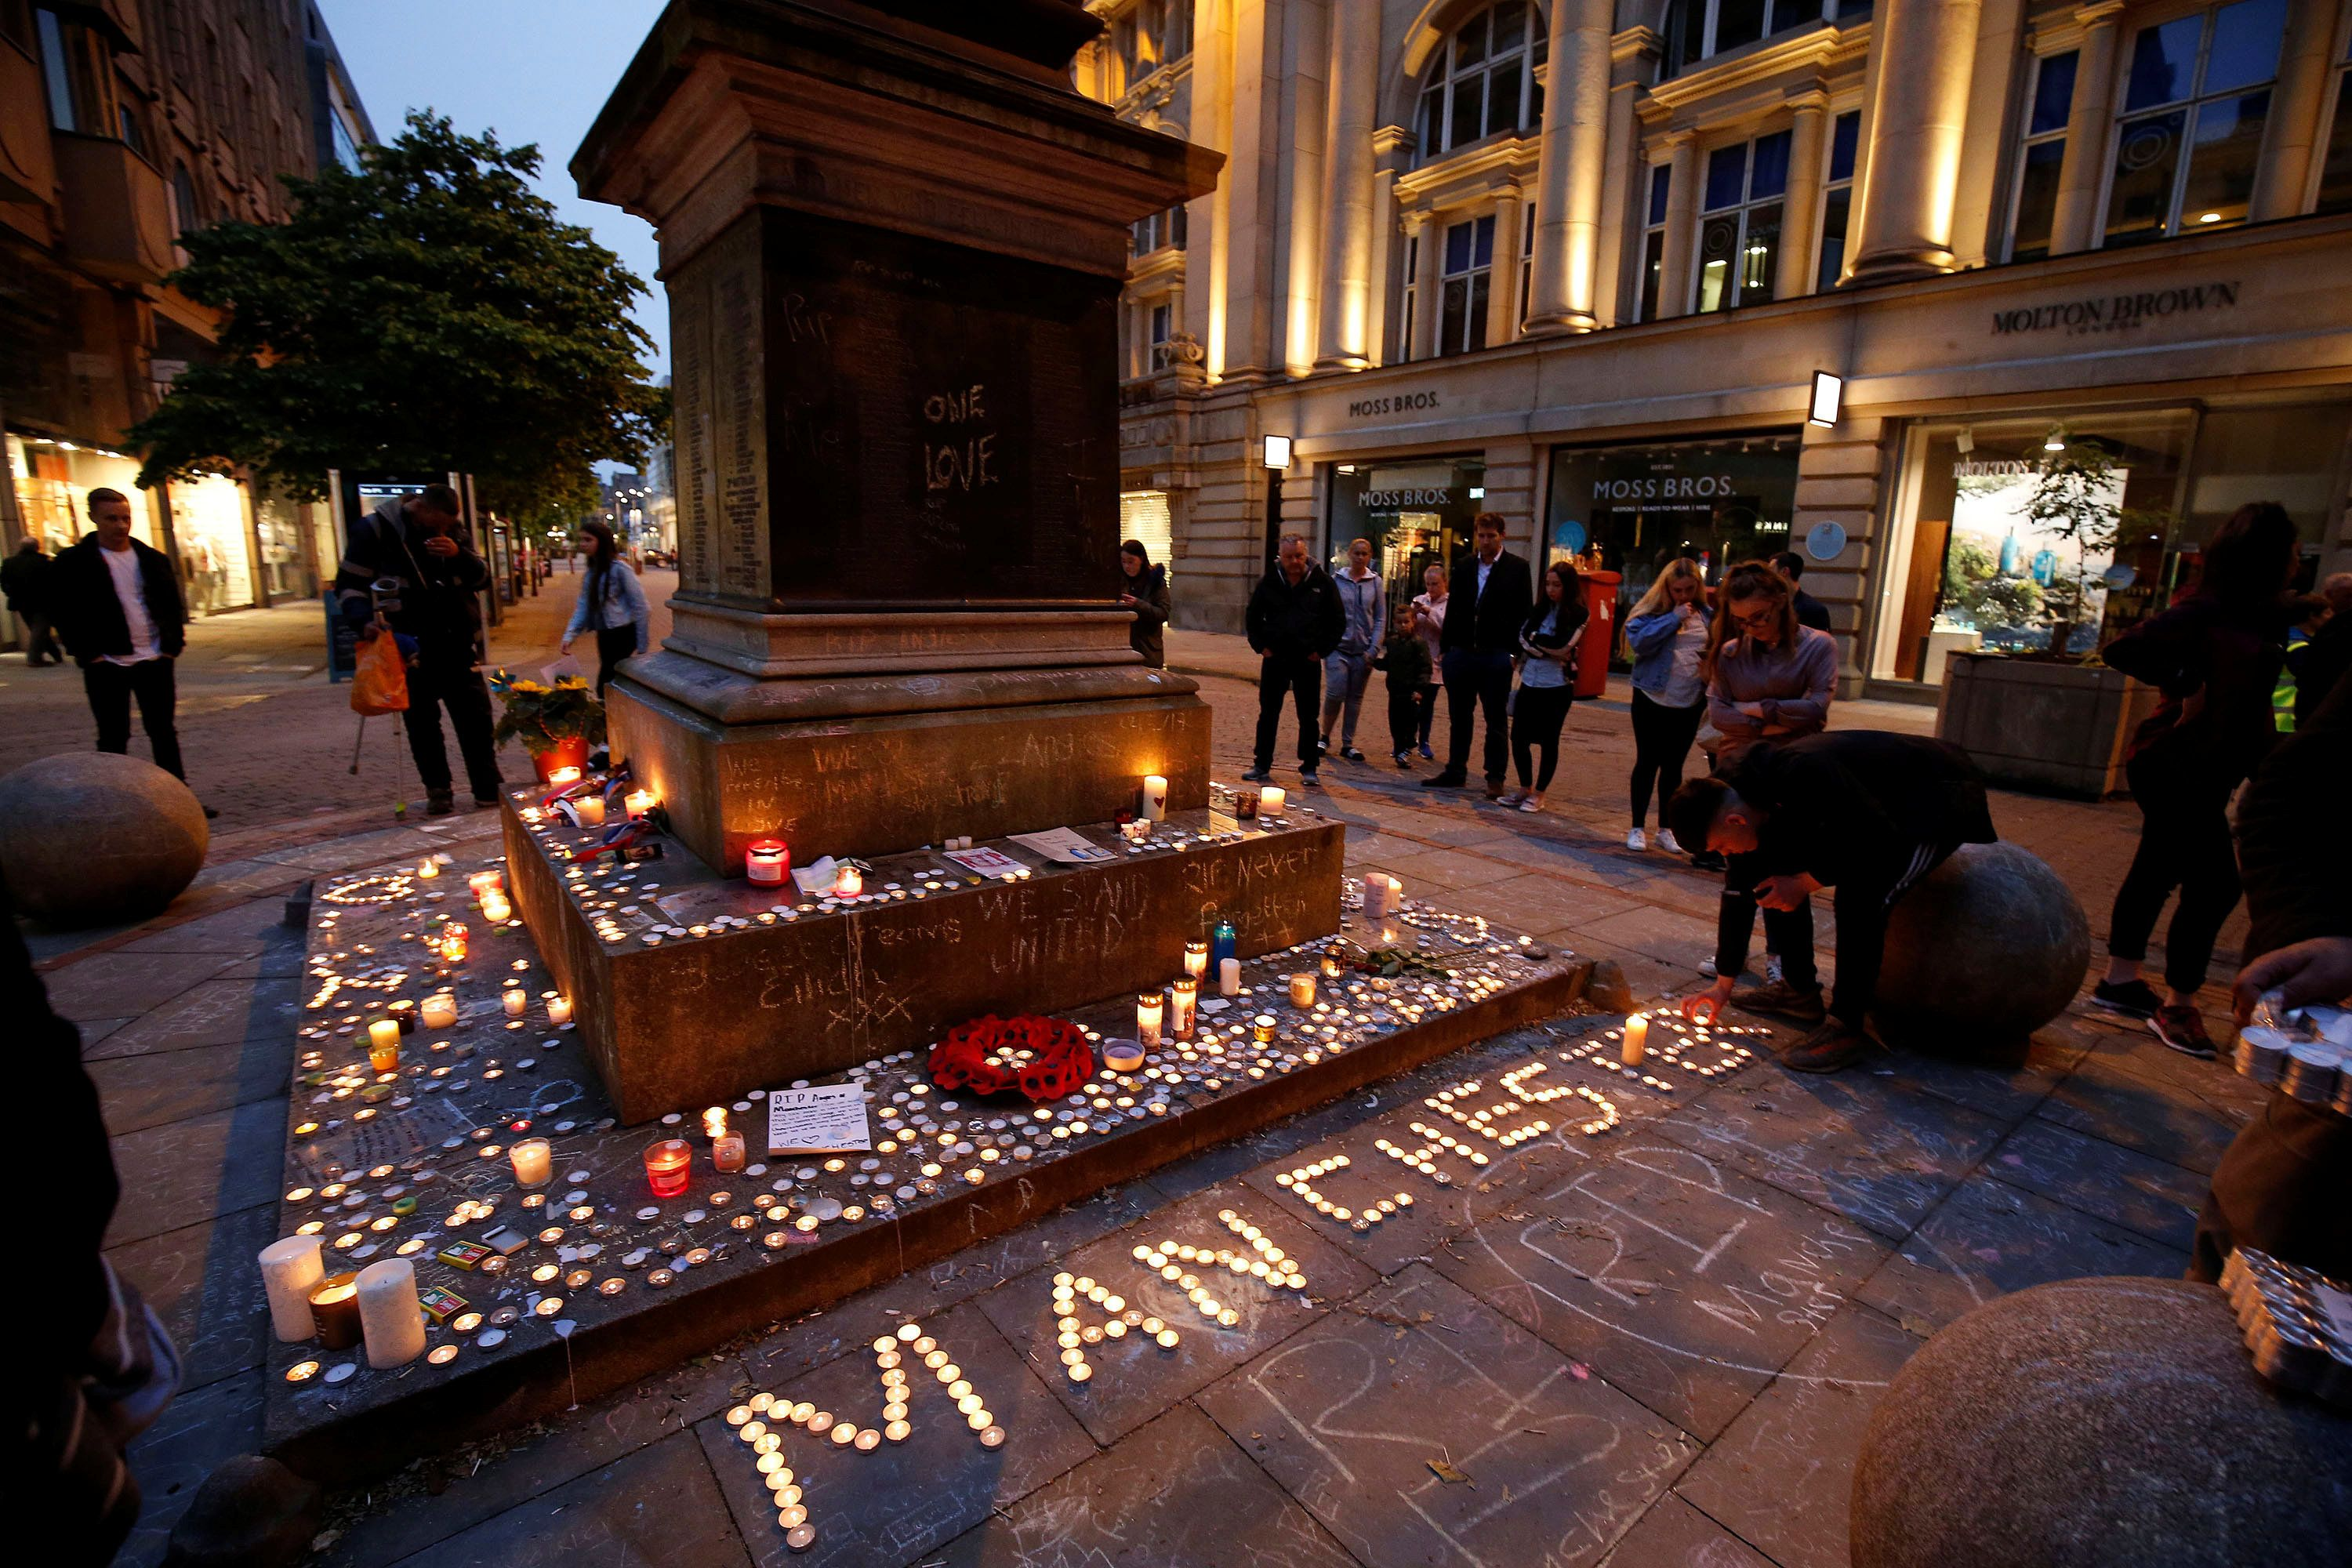 Terror Attack Survivors 'Routinely Let Down' By Mental Health Services, Survey